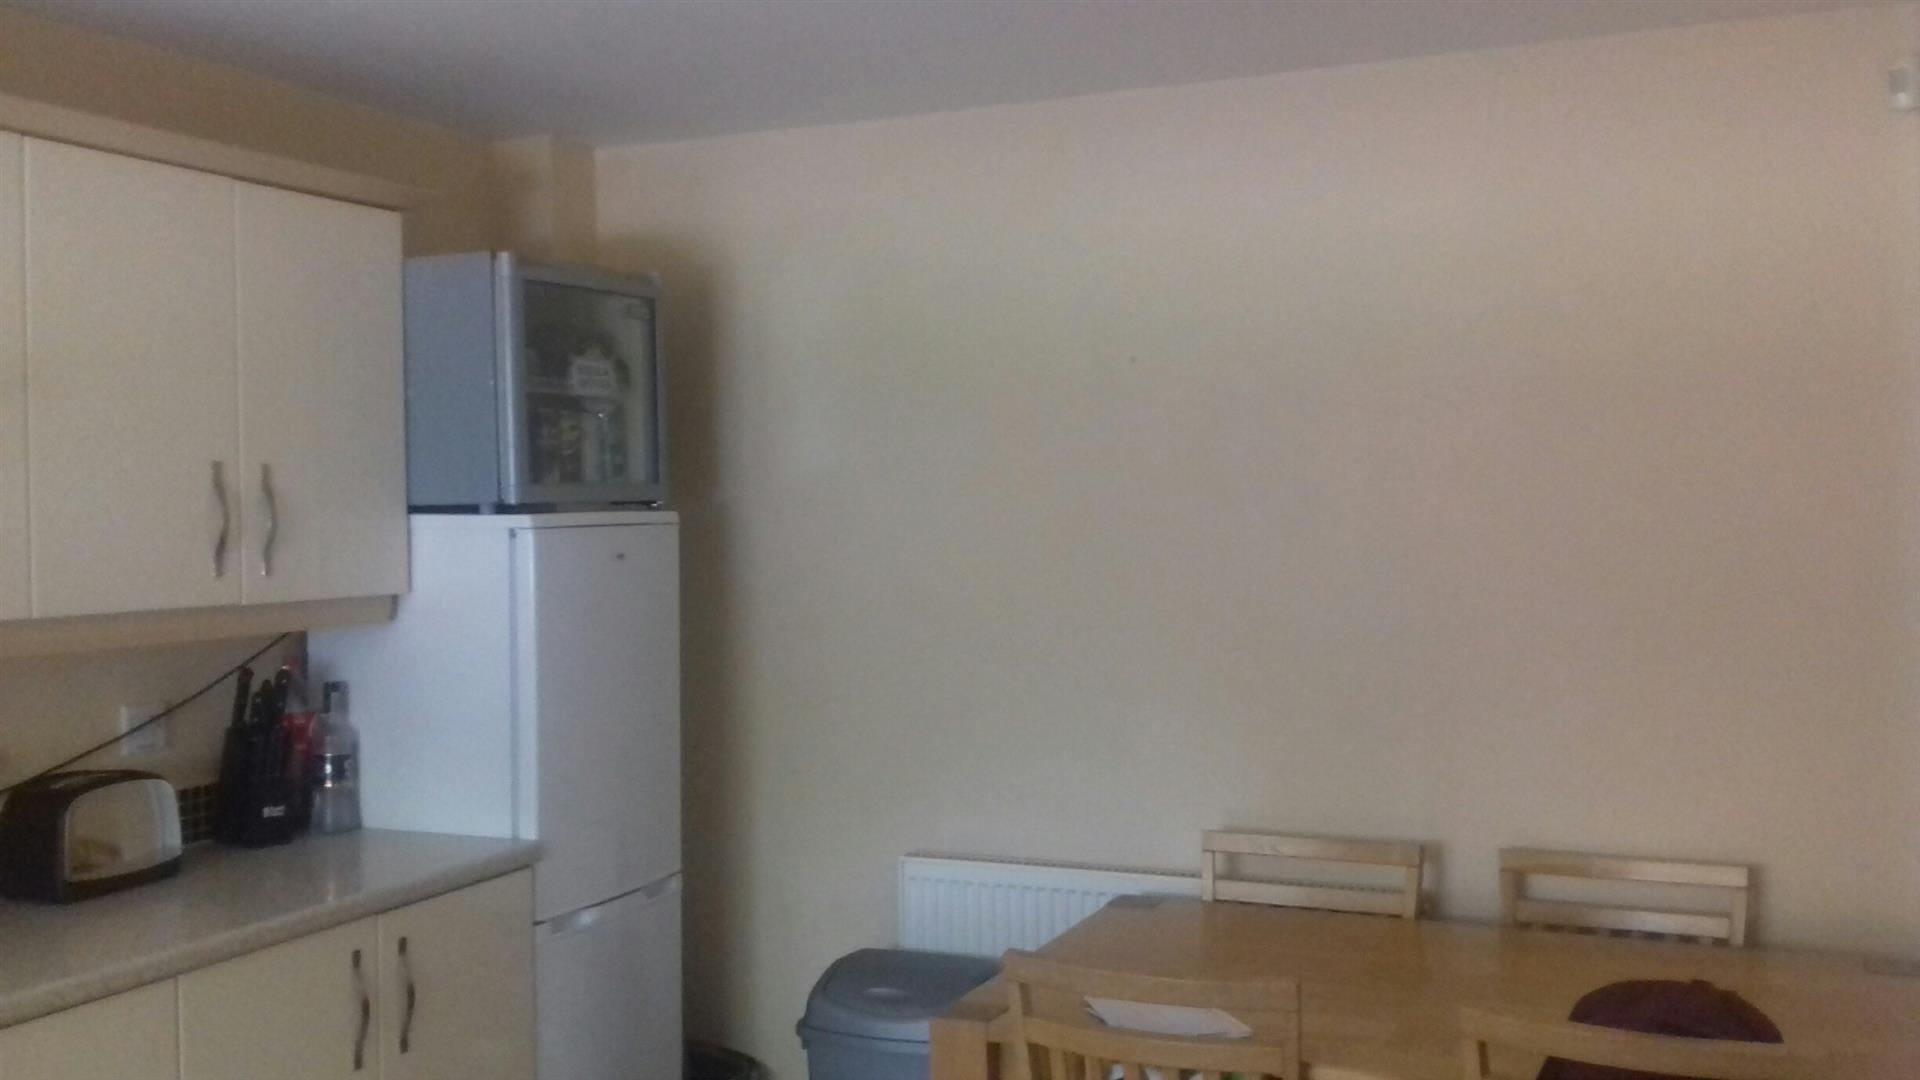 3 bed house to rent in Sutton Bridge Spalding, PE12 9PY 2